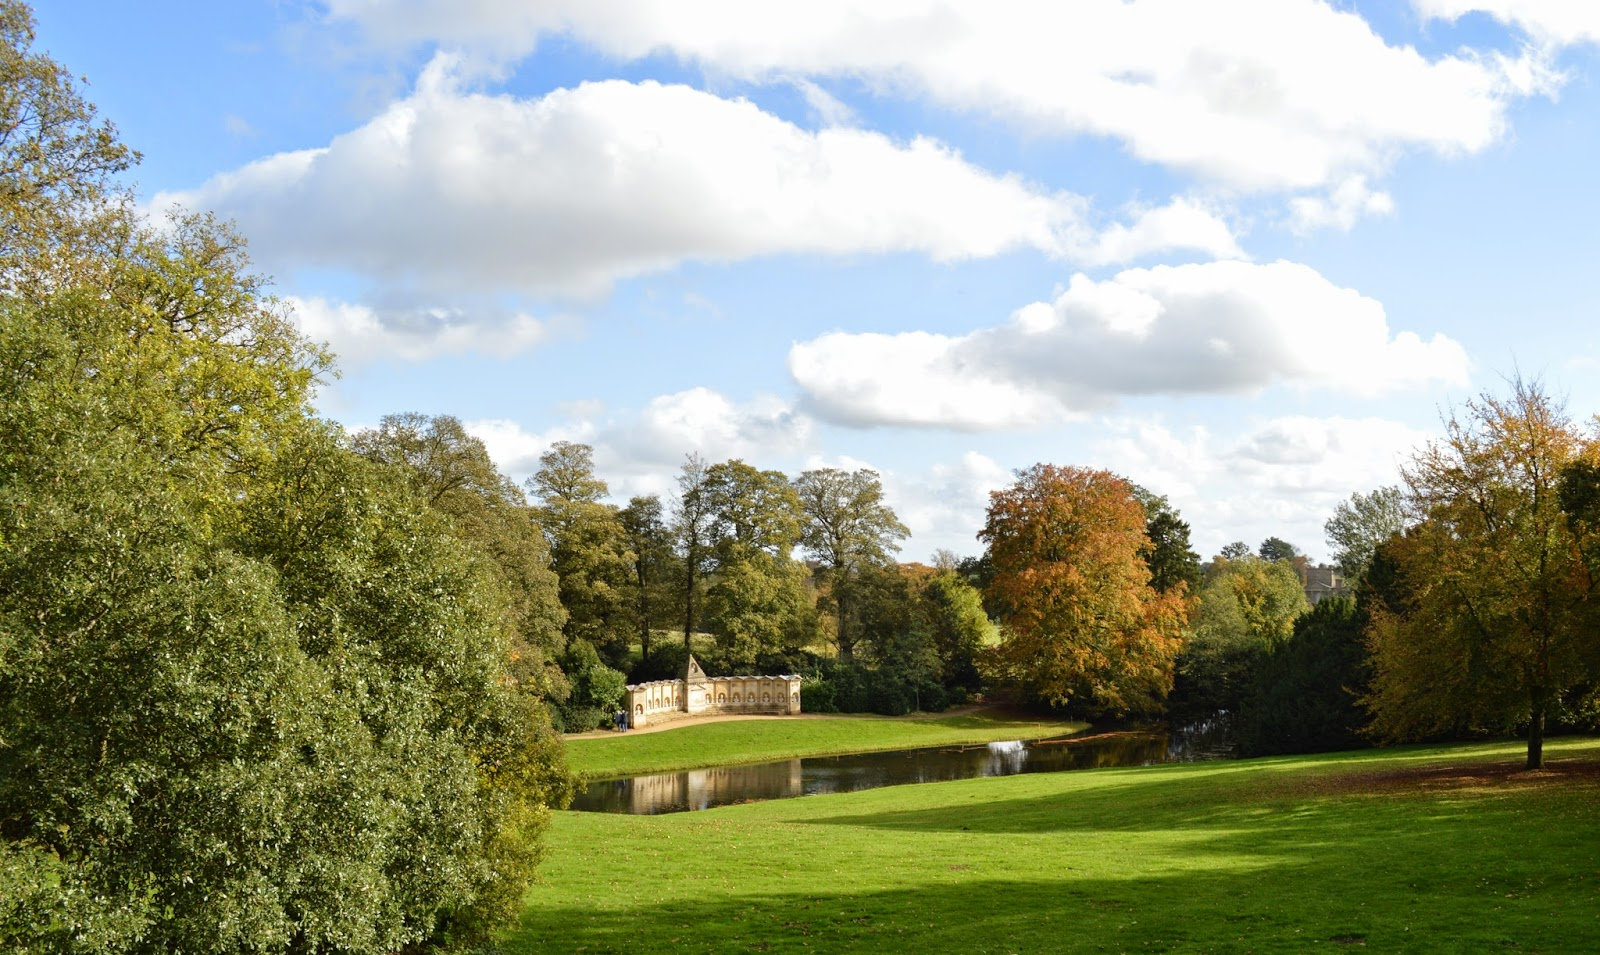 Stowe, day trip, visit, colours, Autumn, trees, nature, orange, yellow, conkers, sunny day, traditional, activity, UK, England, blue sky, elm, oak, chestnut, stream, lake, reflection